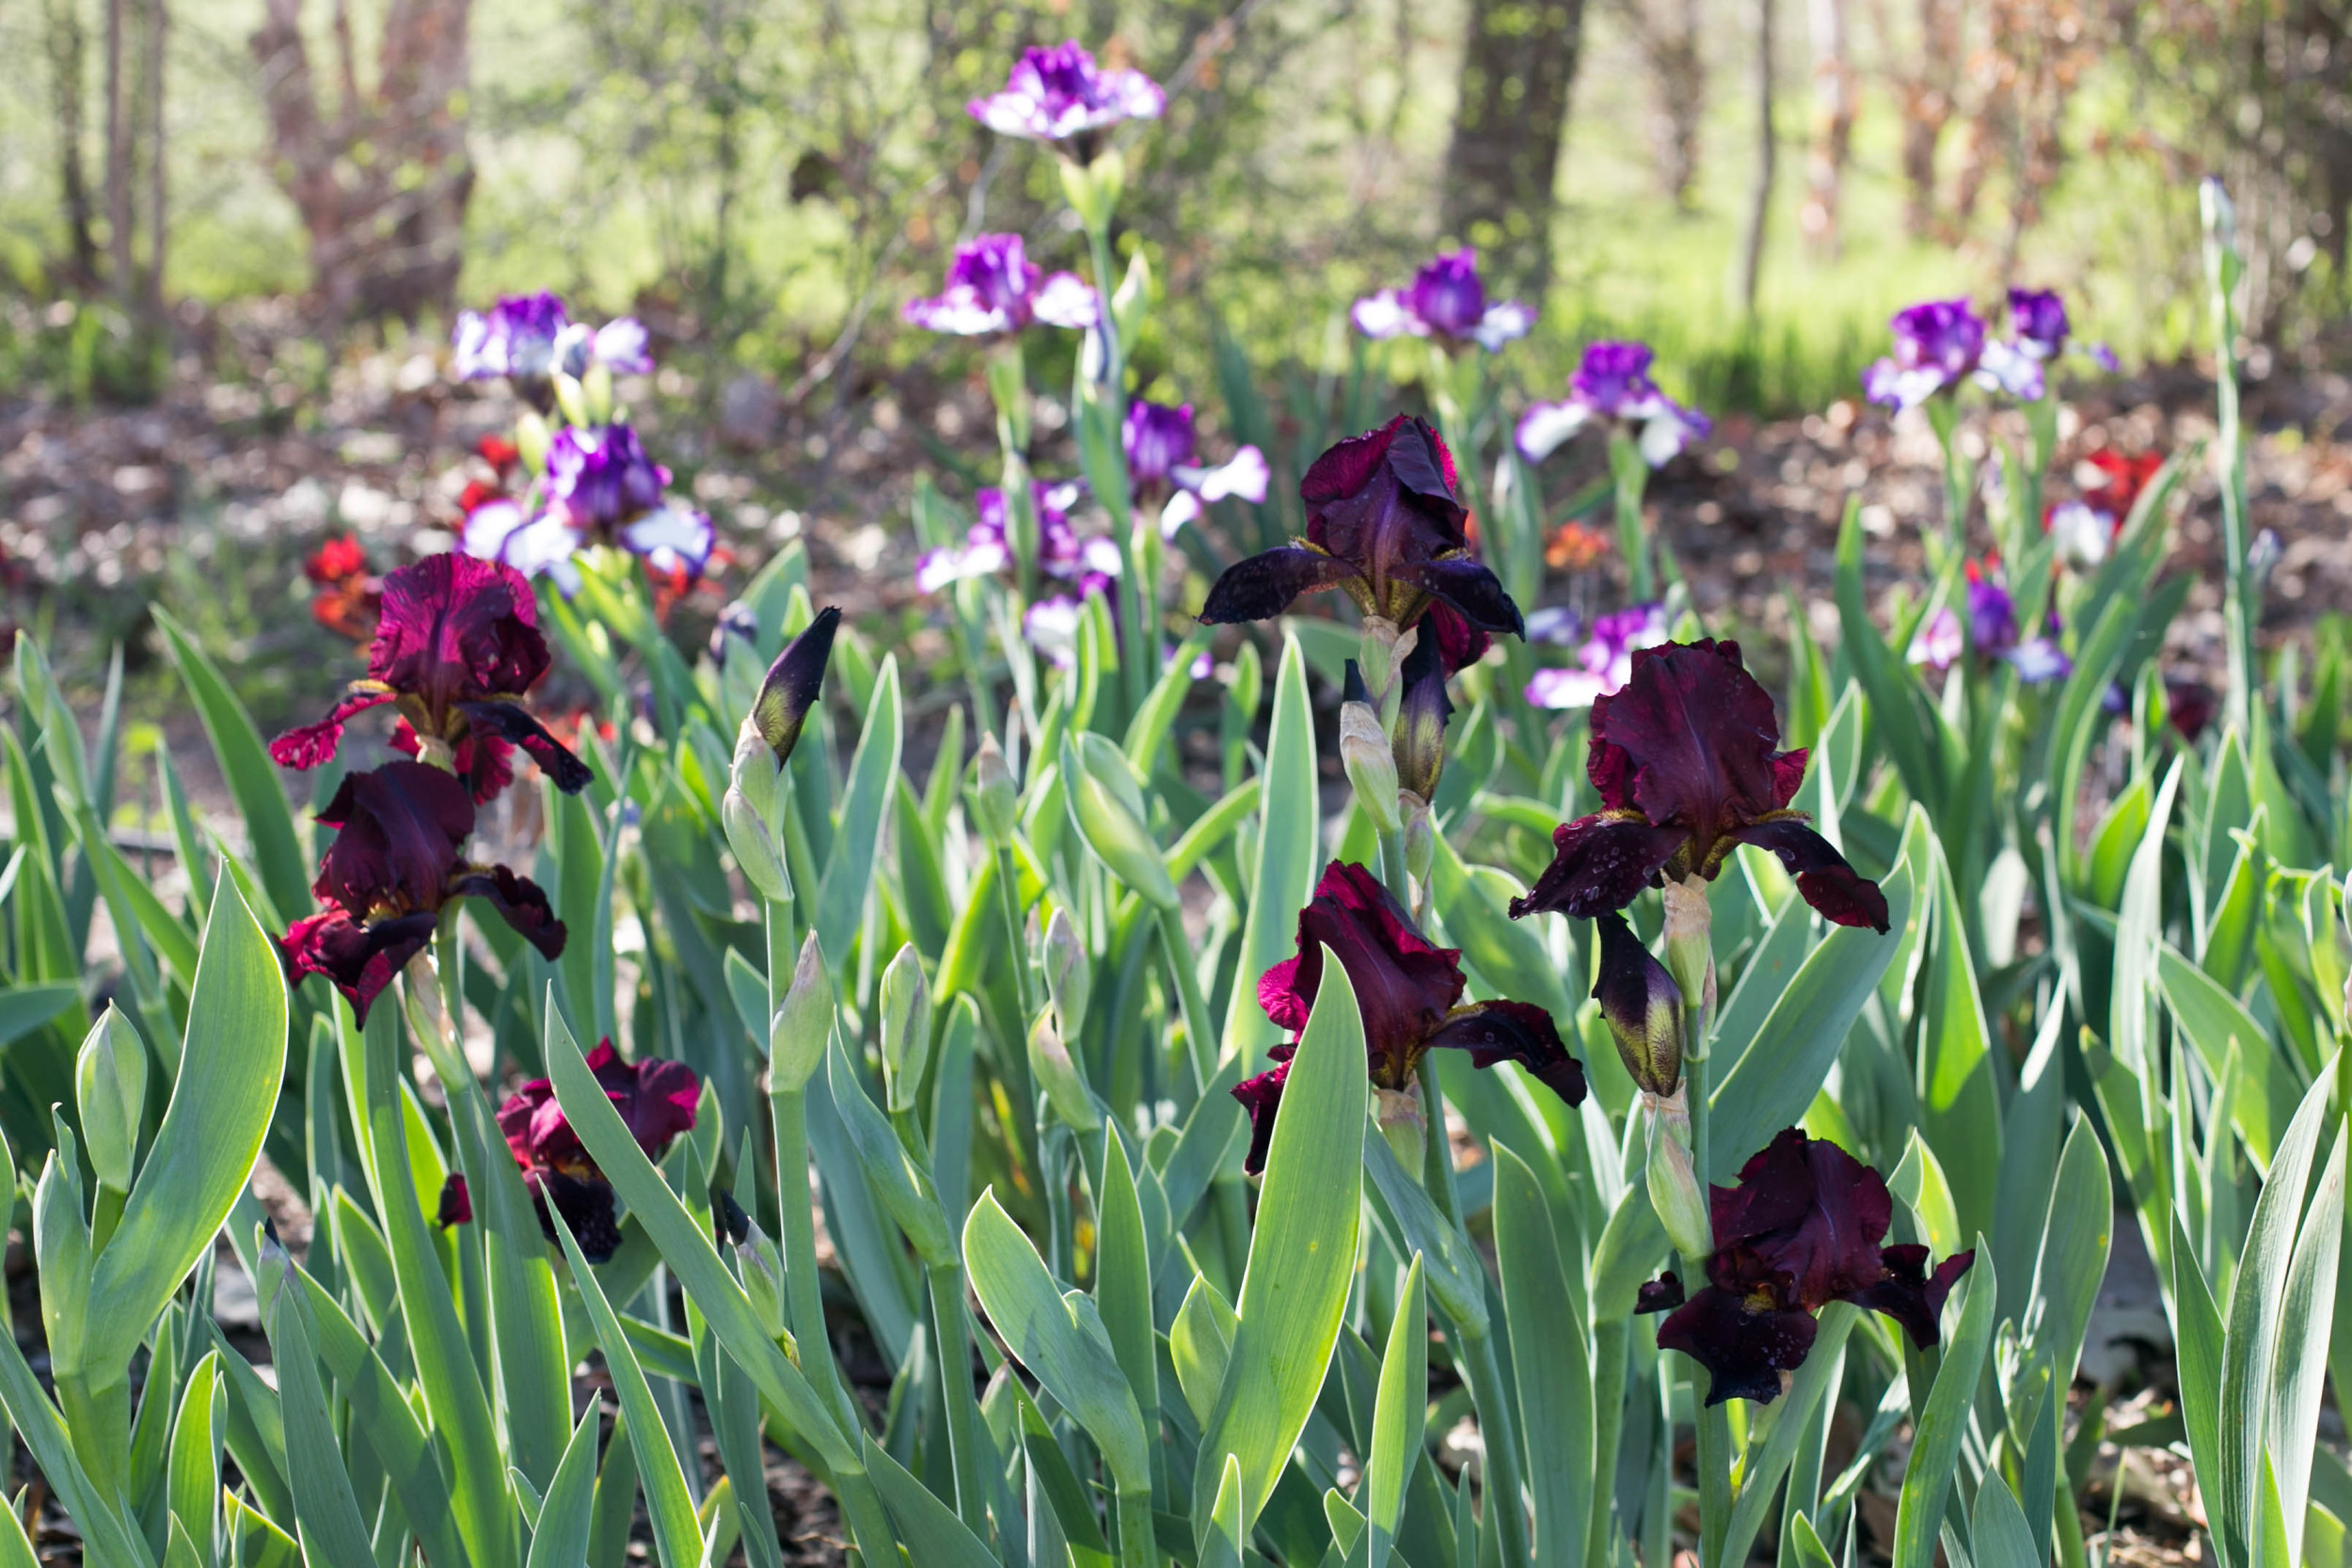 Drifts of Tall Bearded Iris at the edge of the wood